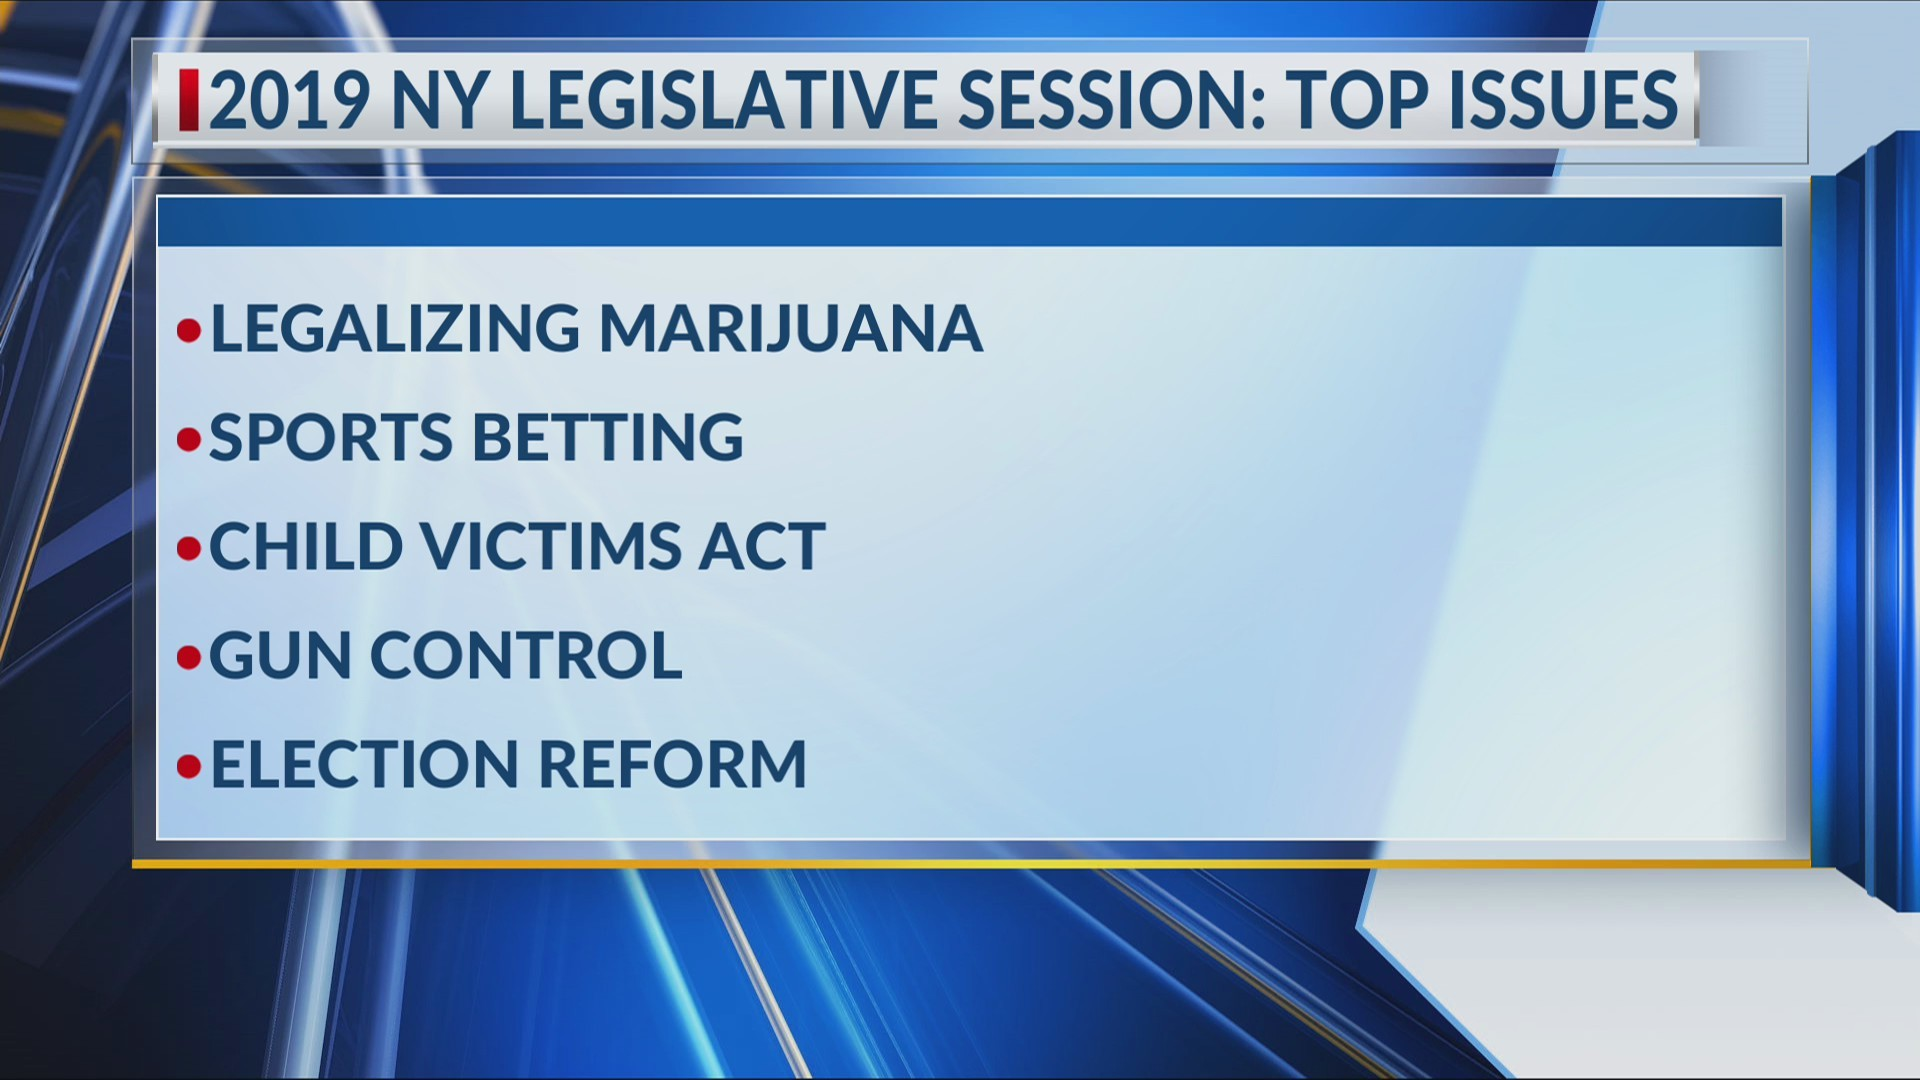 2019 session for NY State legislature to begin Wednesday